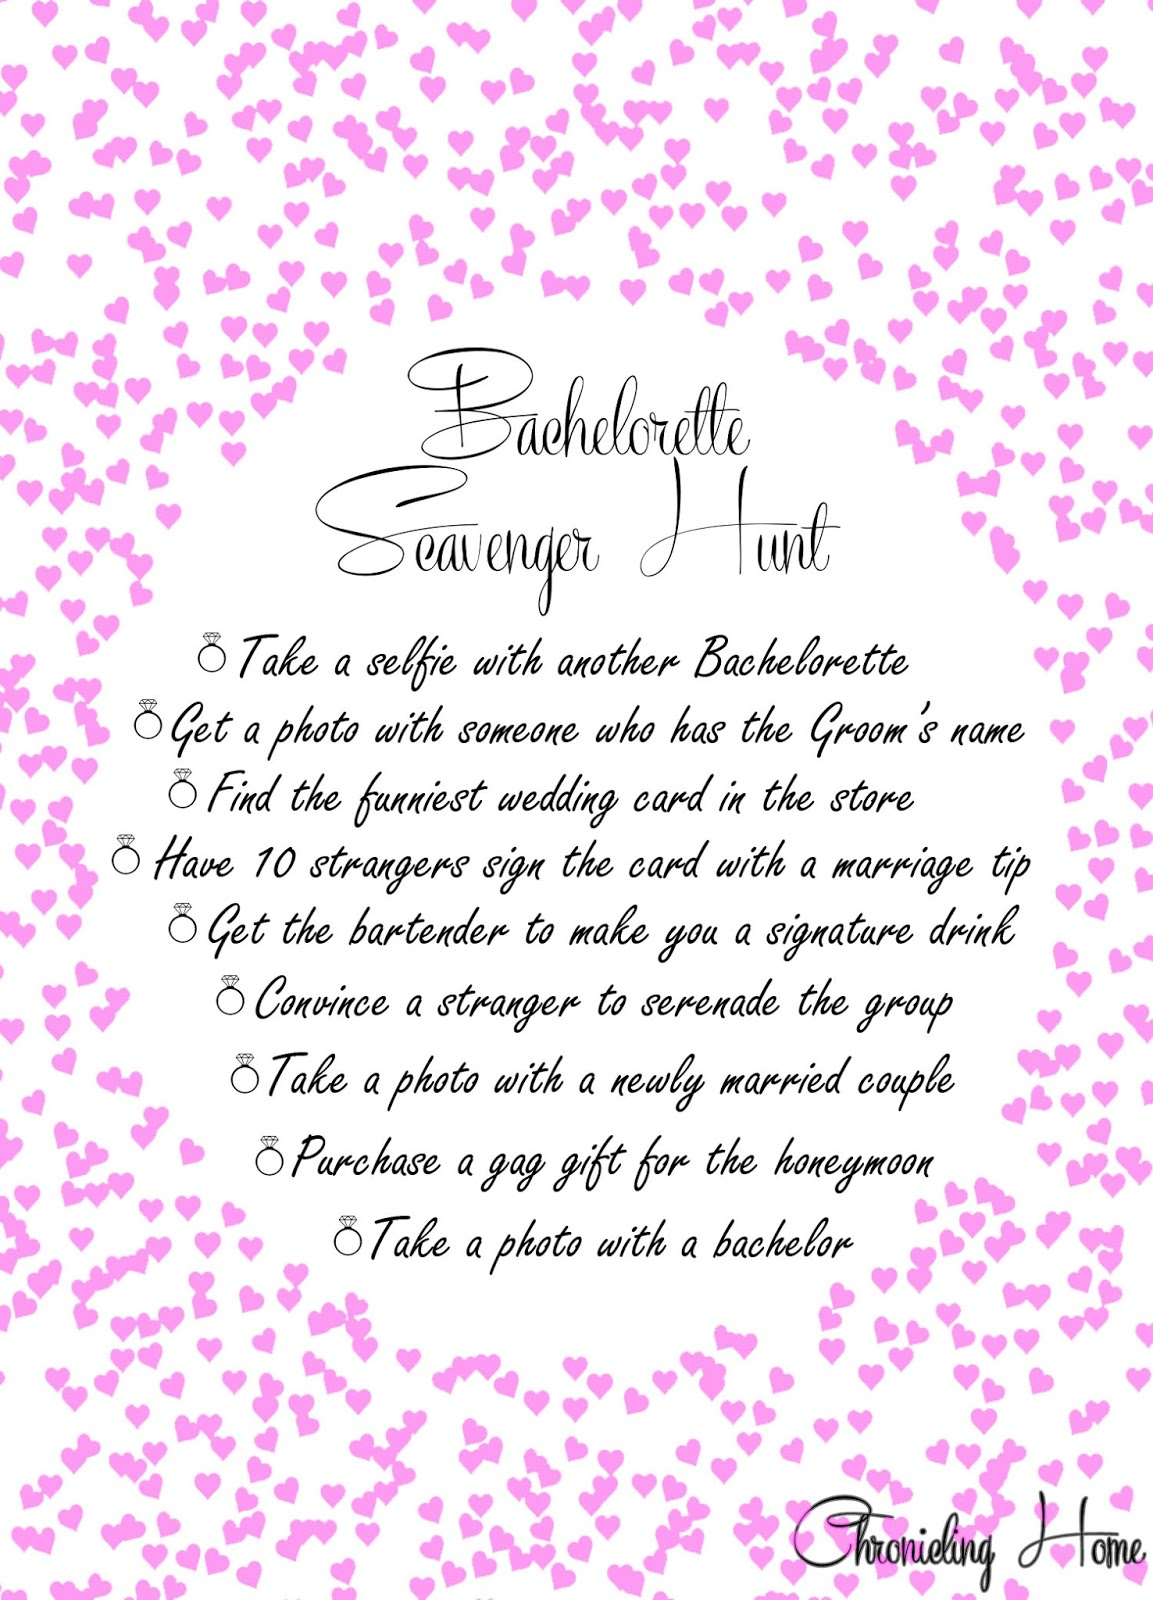 picture relating to Bachelorette Scavenger Hunt Printable named Bachelorette Scavenger Hunt + Printable - Chronicling Property